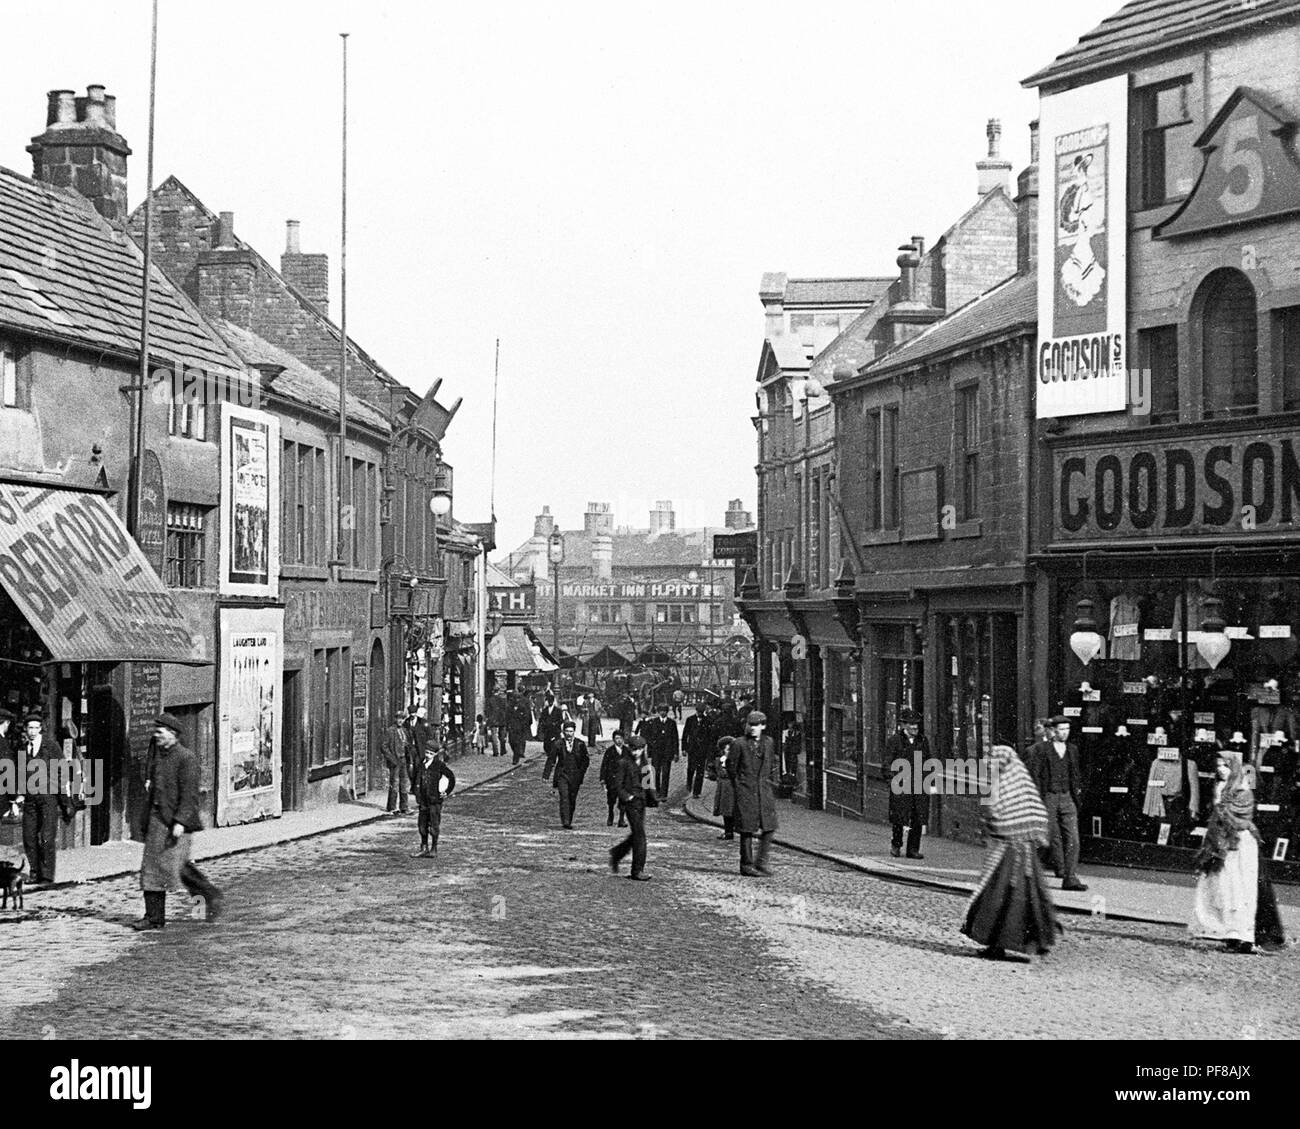 Queen Street, Barnsley, early 1900s - Stock Image